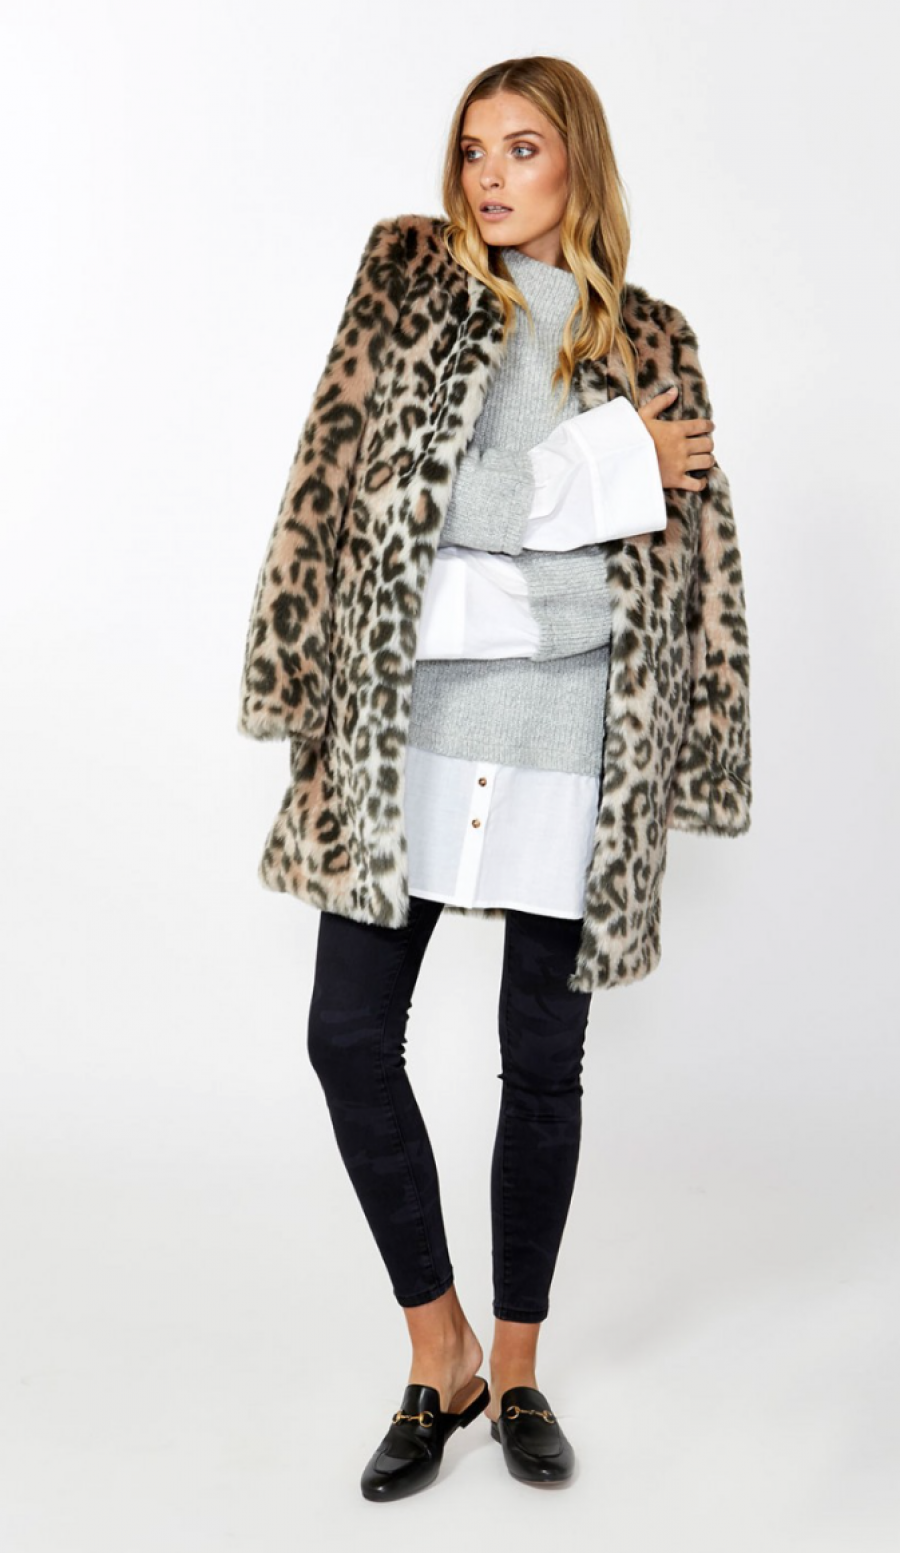 See Need Want Mothers Day Gift Guide Decjuba Leopard Print Coat 1